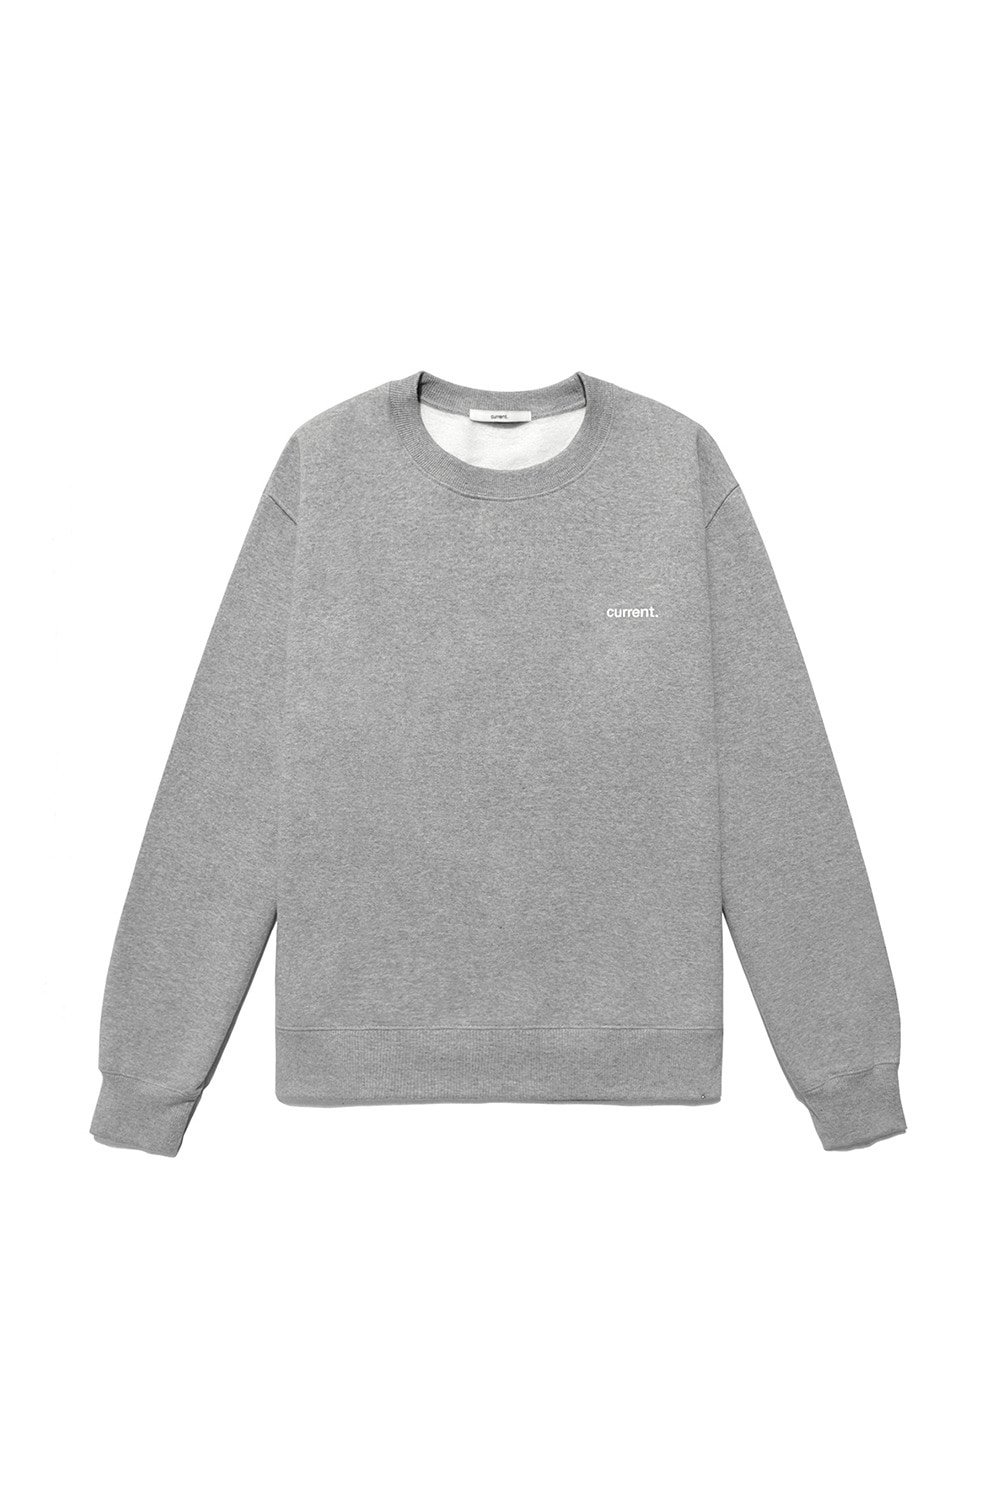 CURRENT LOGO SWEATSHIRT MAN [MELANGE GREY]